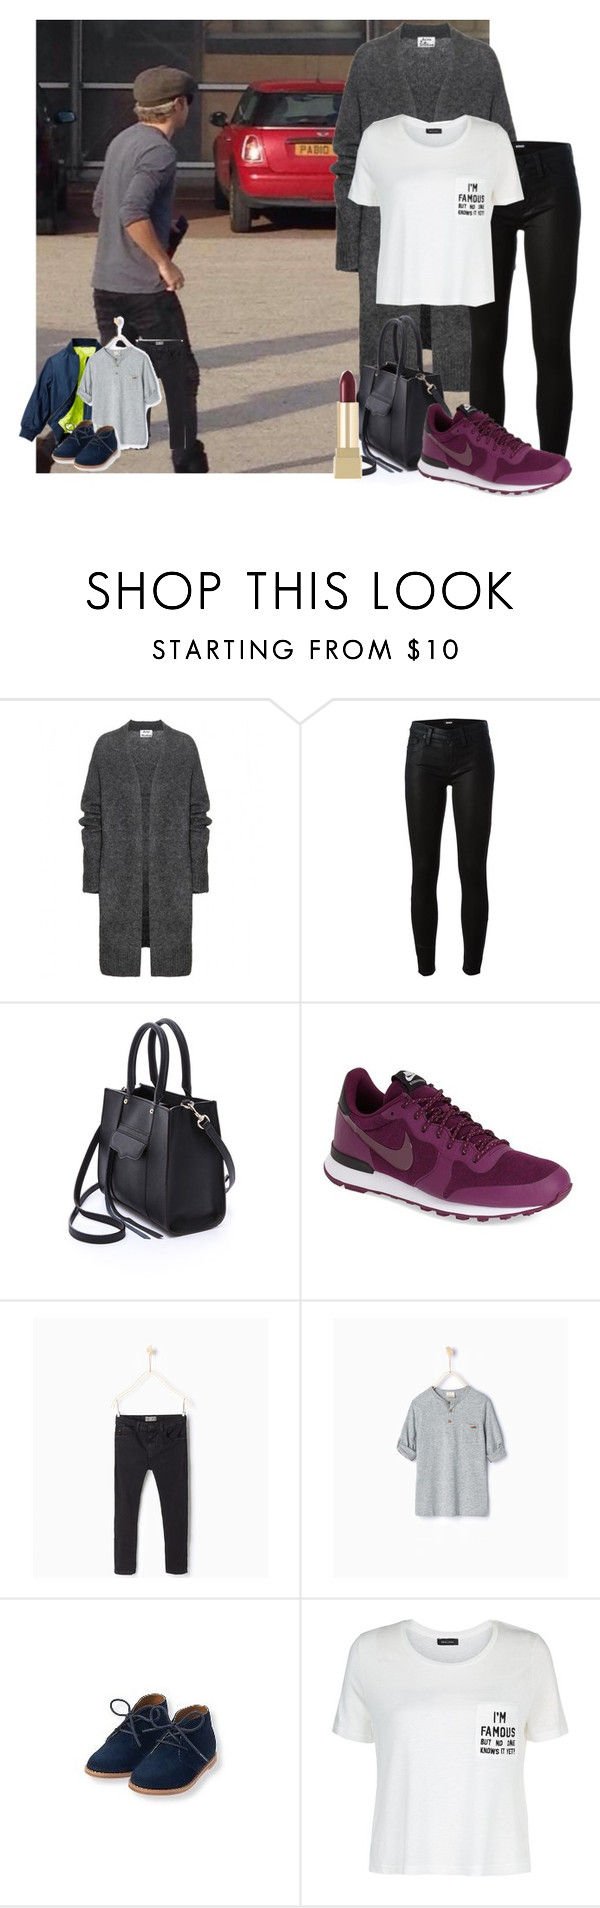 """""""Arriving in O2 w/ Niall and our baby James"""" by nouisxsmiles ❤ liked on Polyvore featuring Acne Studios, Hudson, Rebecca Minkoff, H&M, NIKE, Zara and Yves Saint Laurent"""